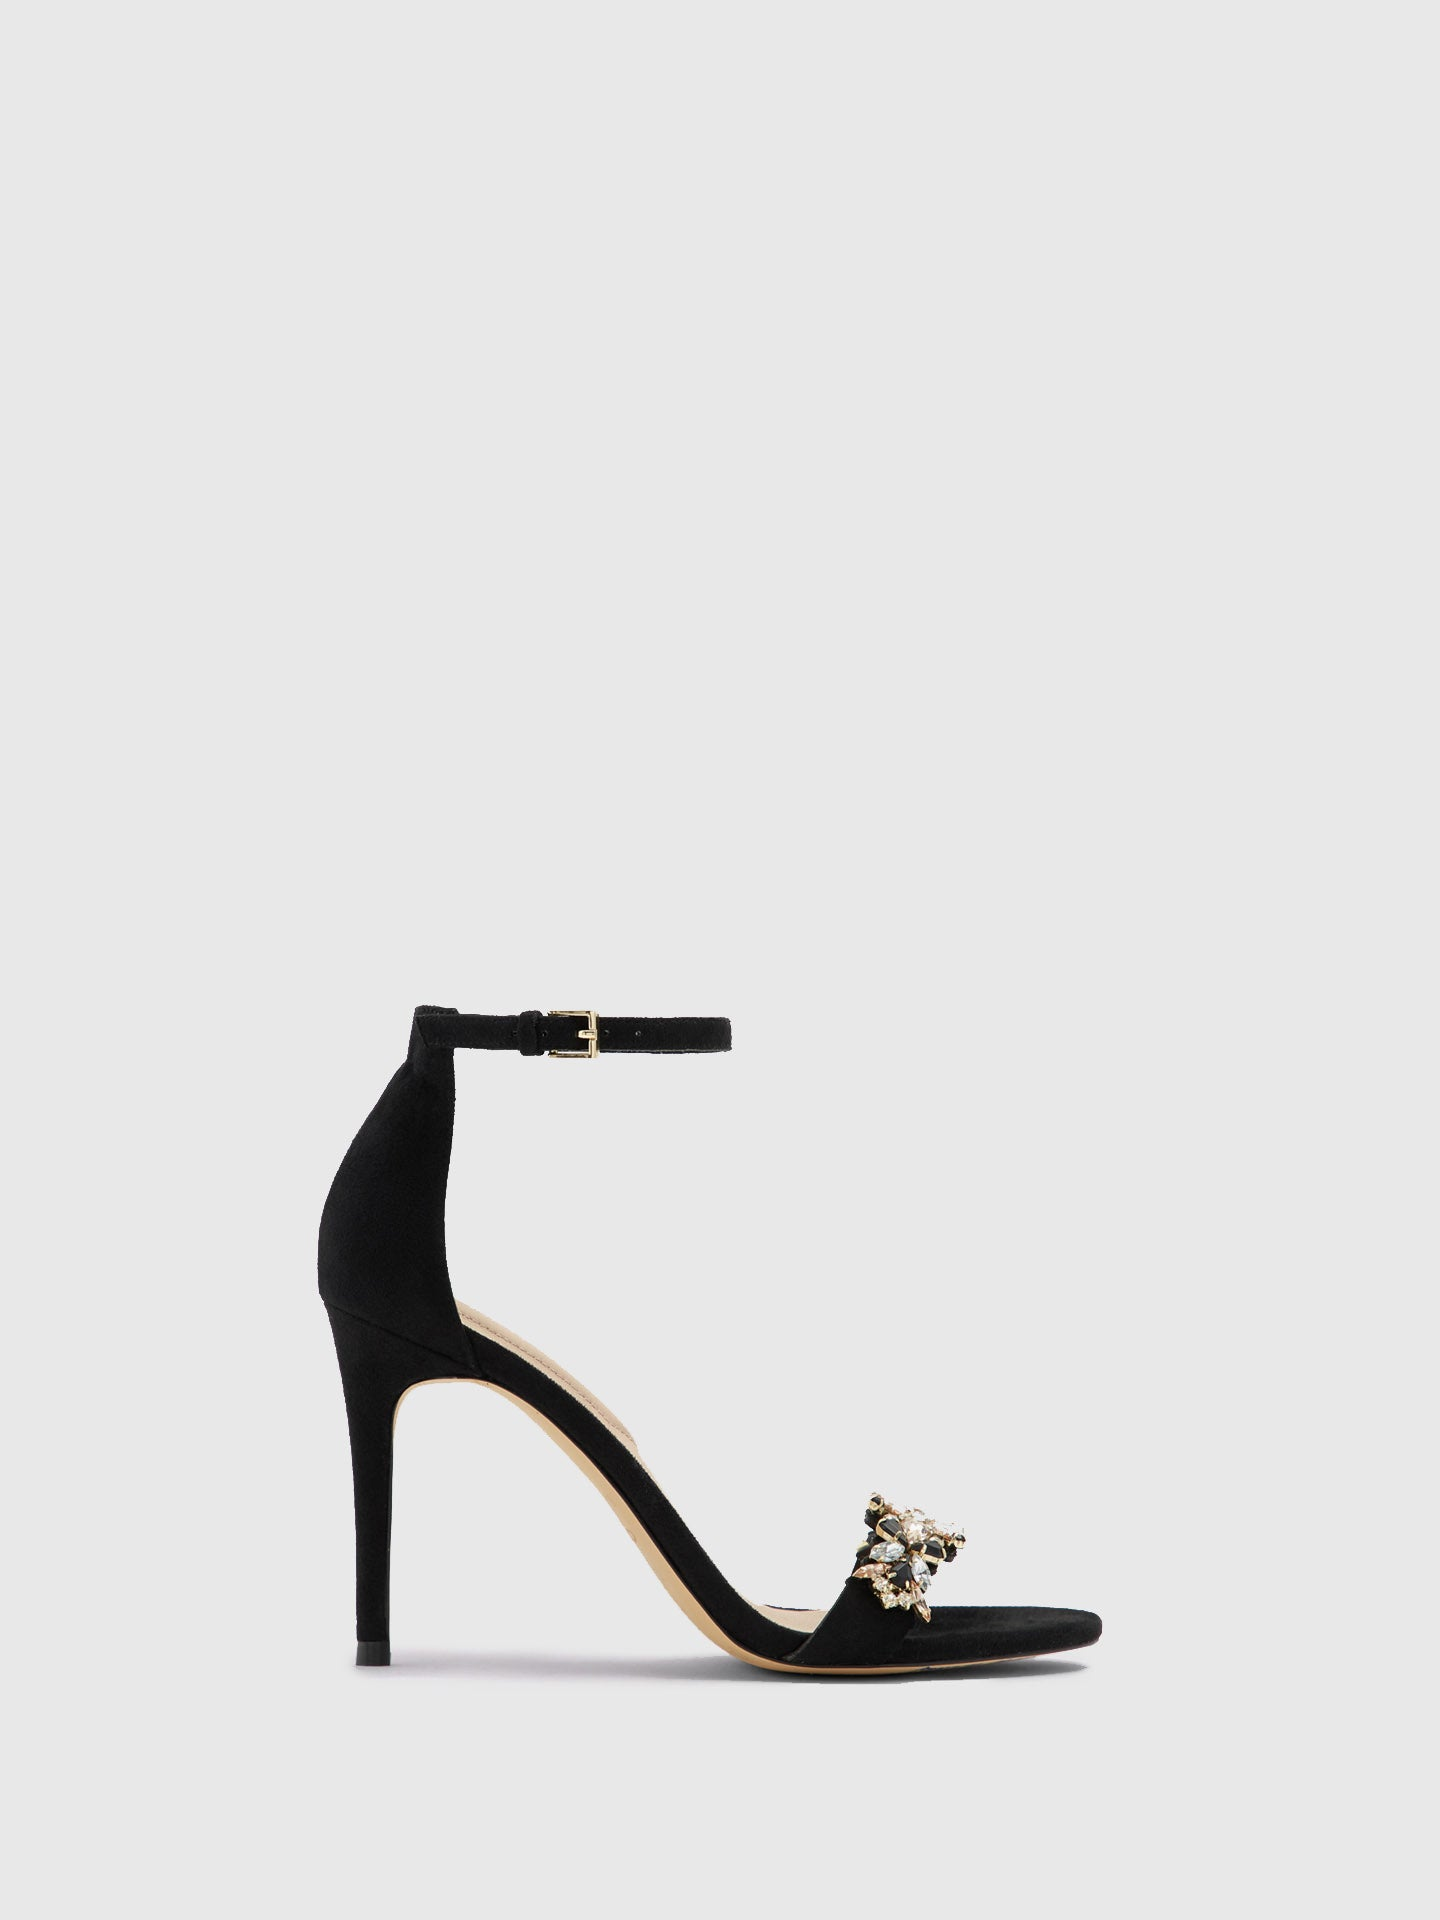 Aldo Black Appliqués Sandals